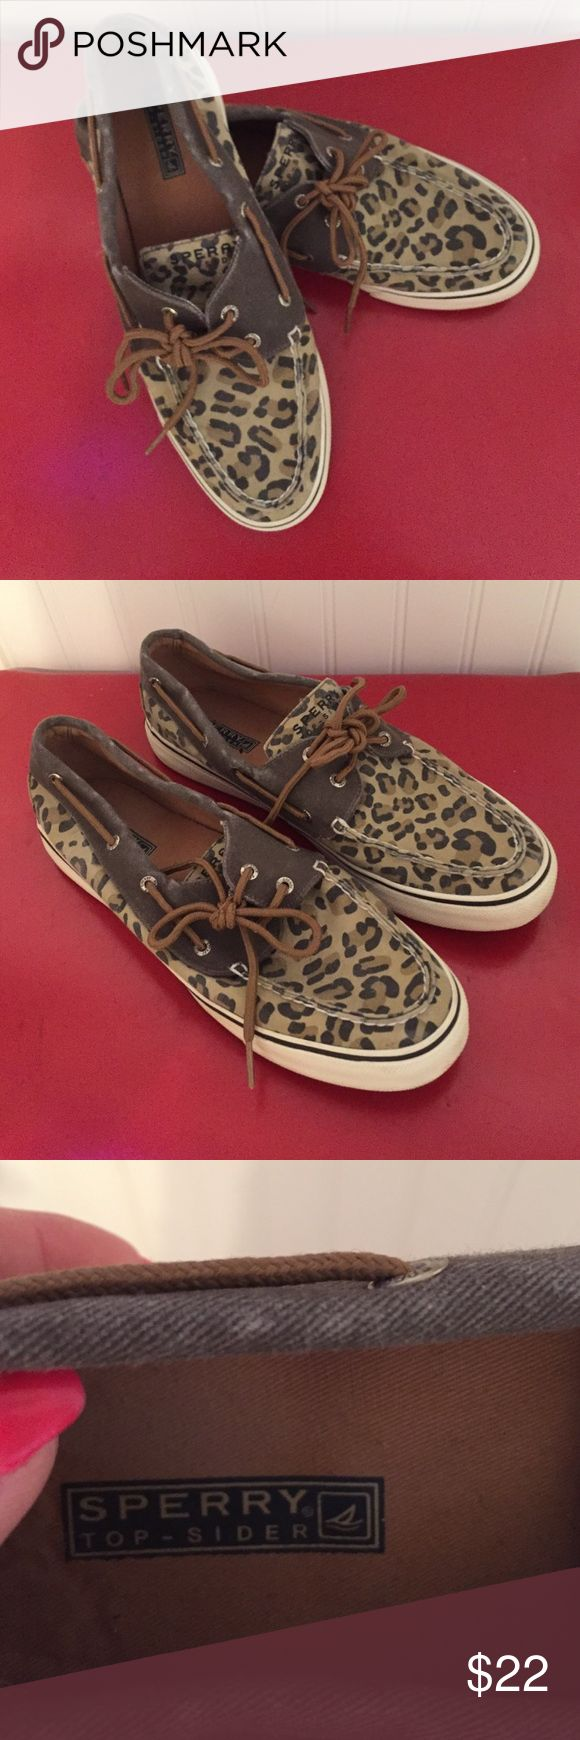 Sperry Top Sider Size 10 Sperry Top Sider Animal Print size 10 used however in great condition..please message me with any questions...God Bless Sperry Top-Sider Shoes Slippers